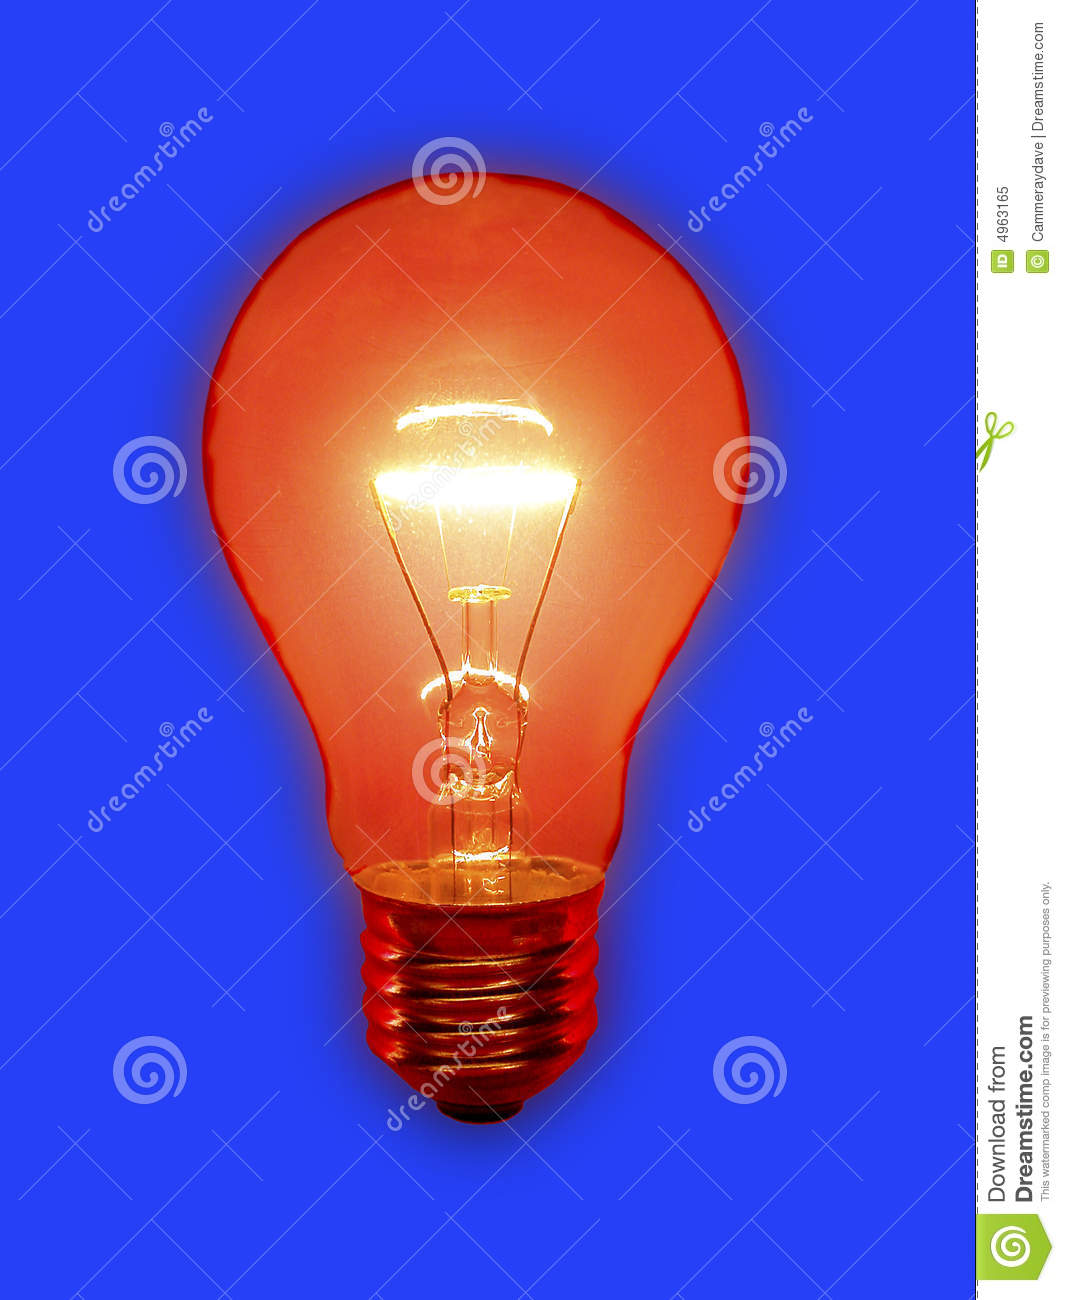 Download Red Light Bulb stock image. Image of bulb, colourful, bright - 4963165